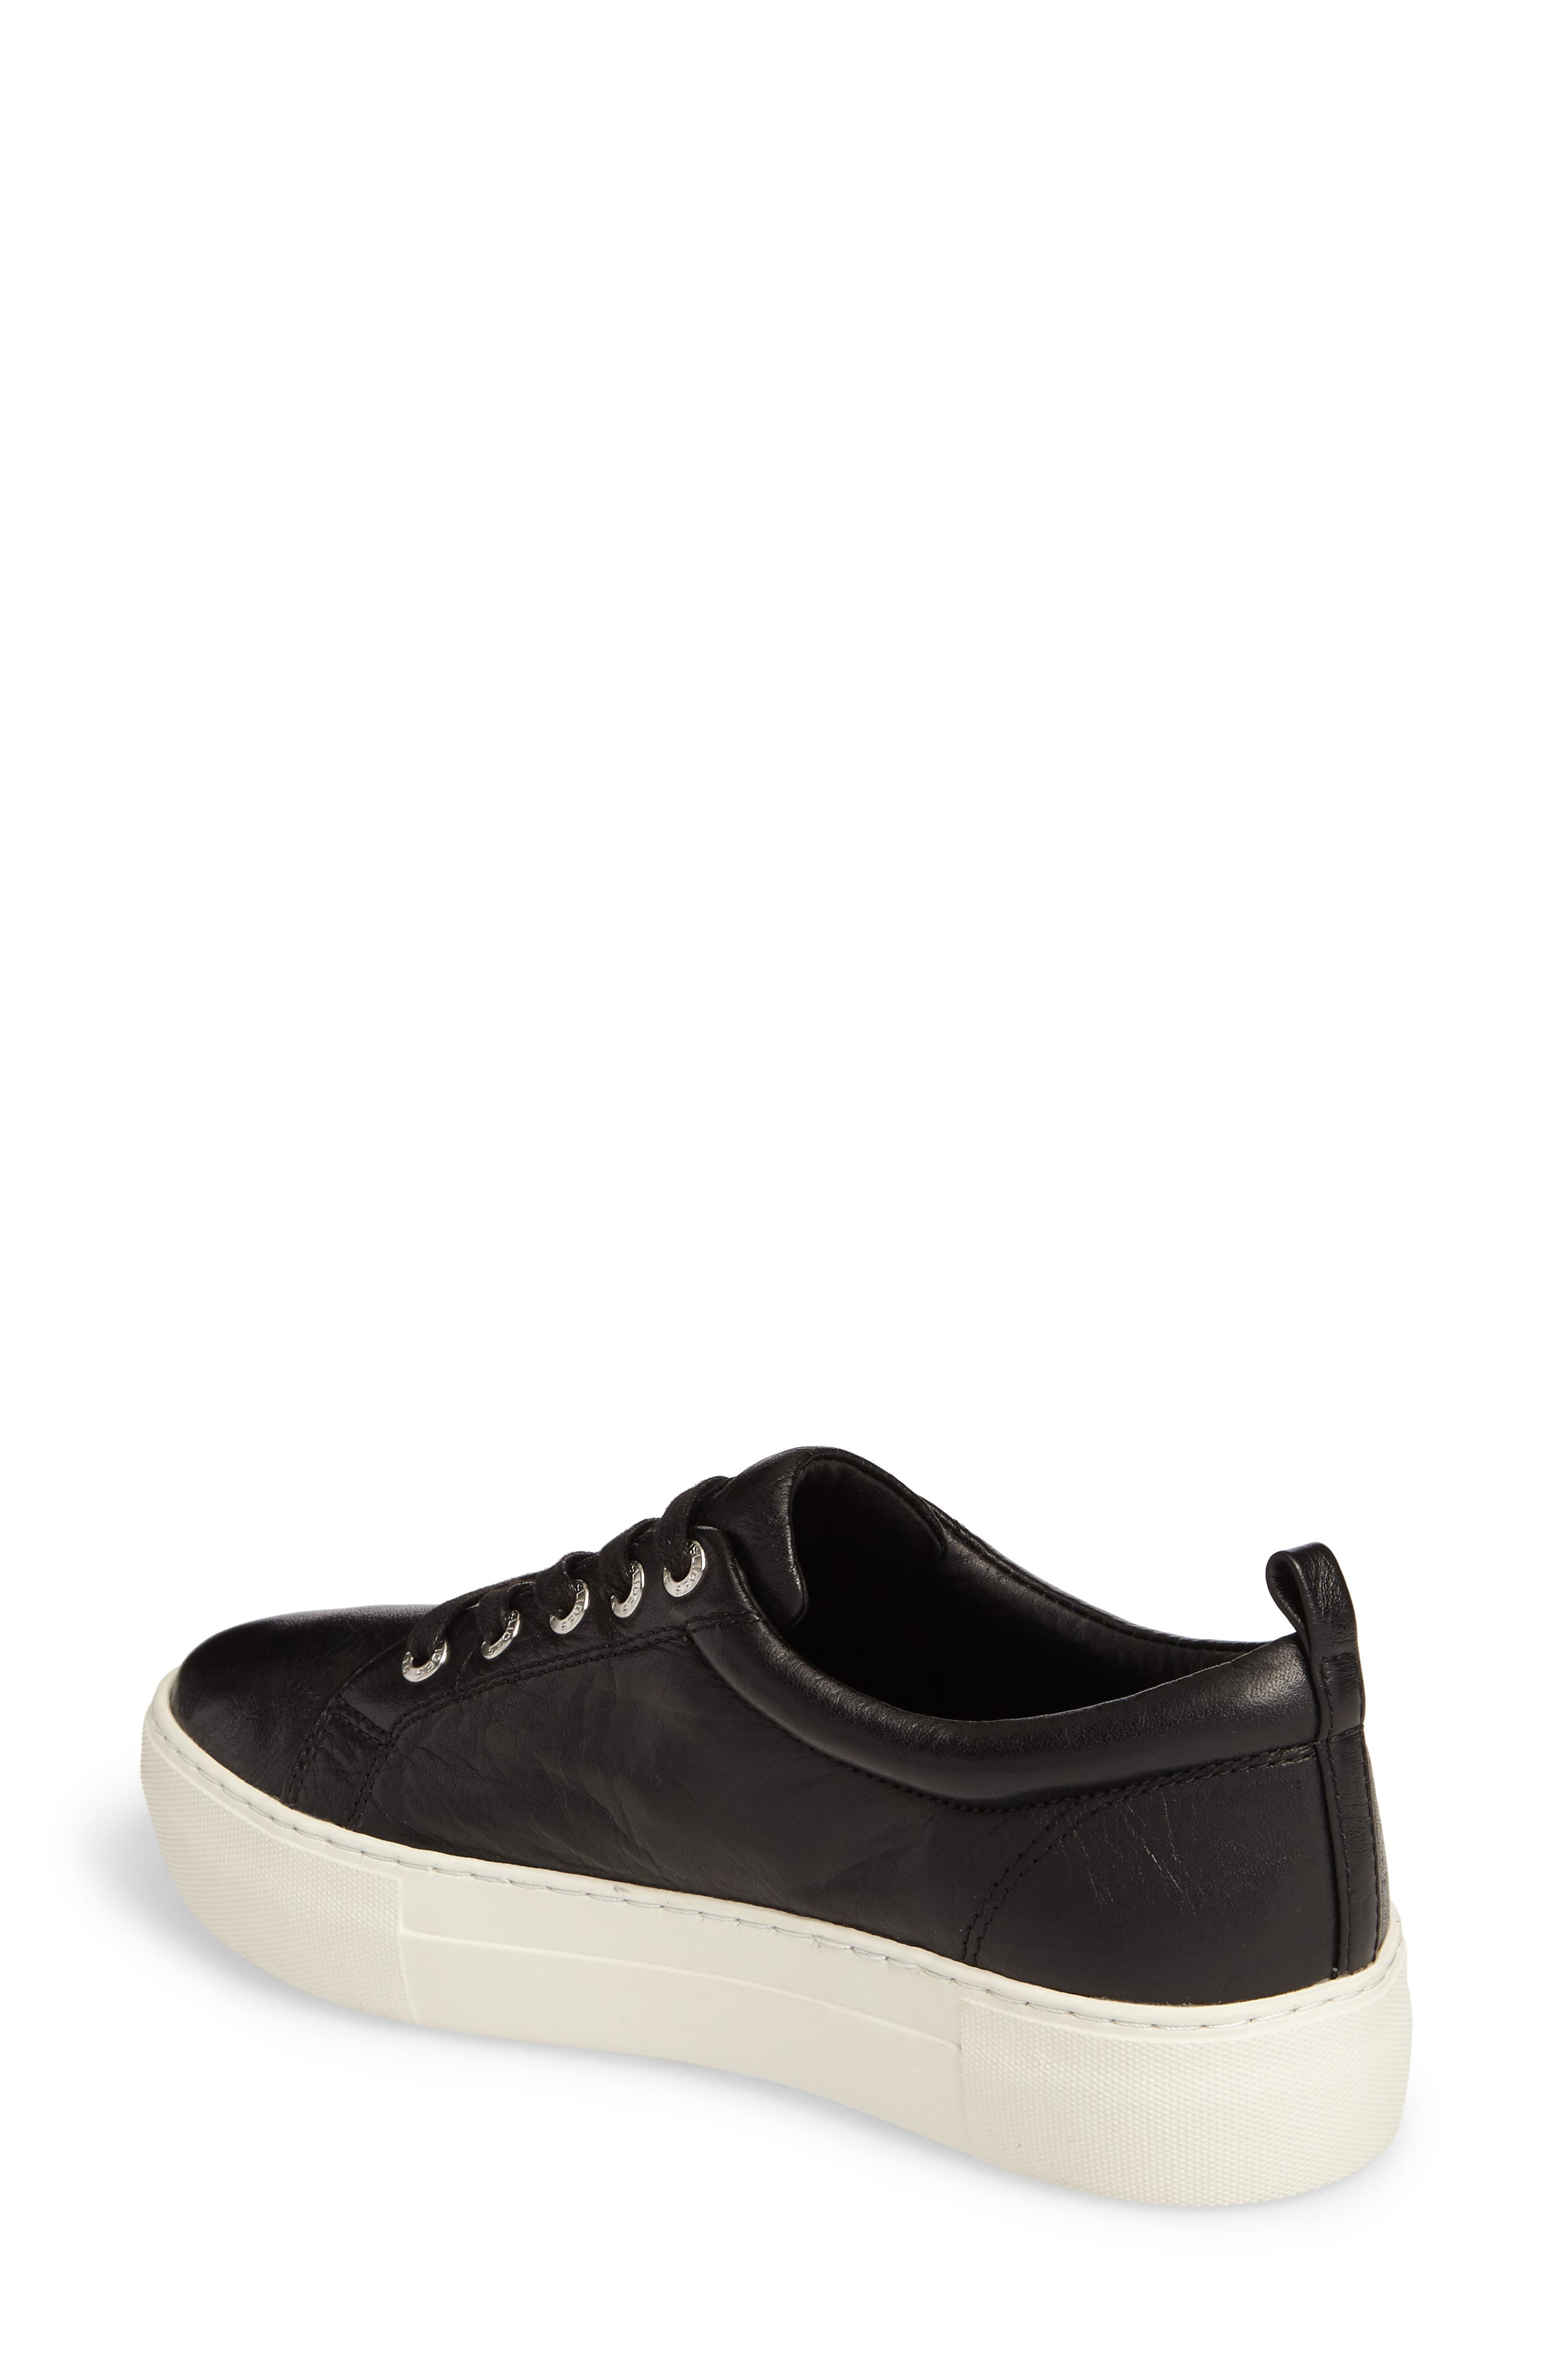 Ambrosia Studded Lace-Up Sneaker,                             Alternate thumbnail 2, color,                             Black Leather